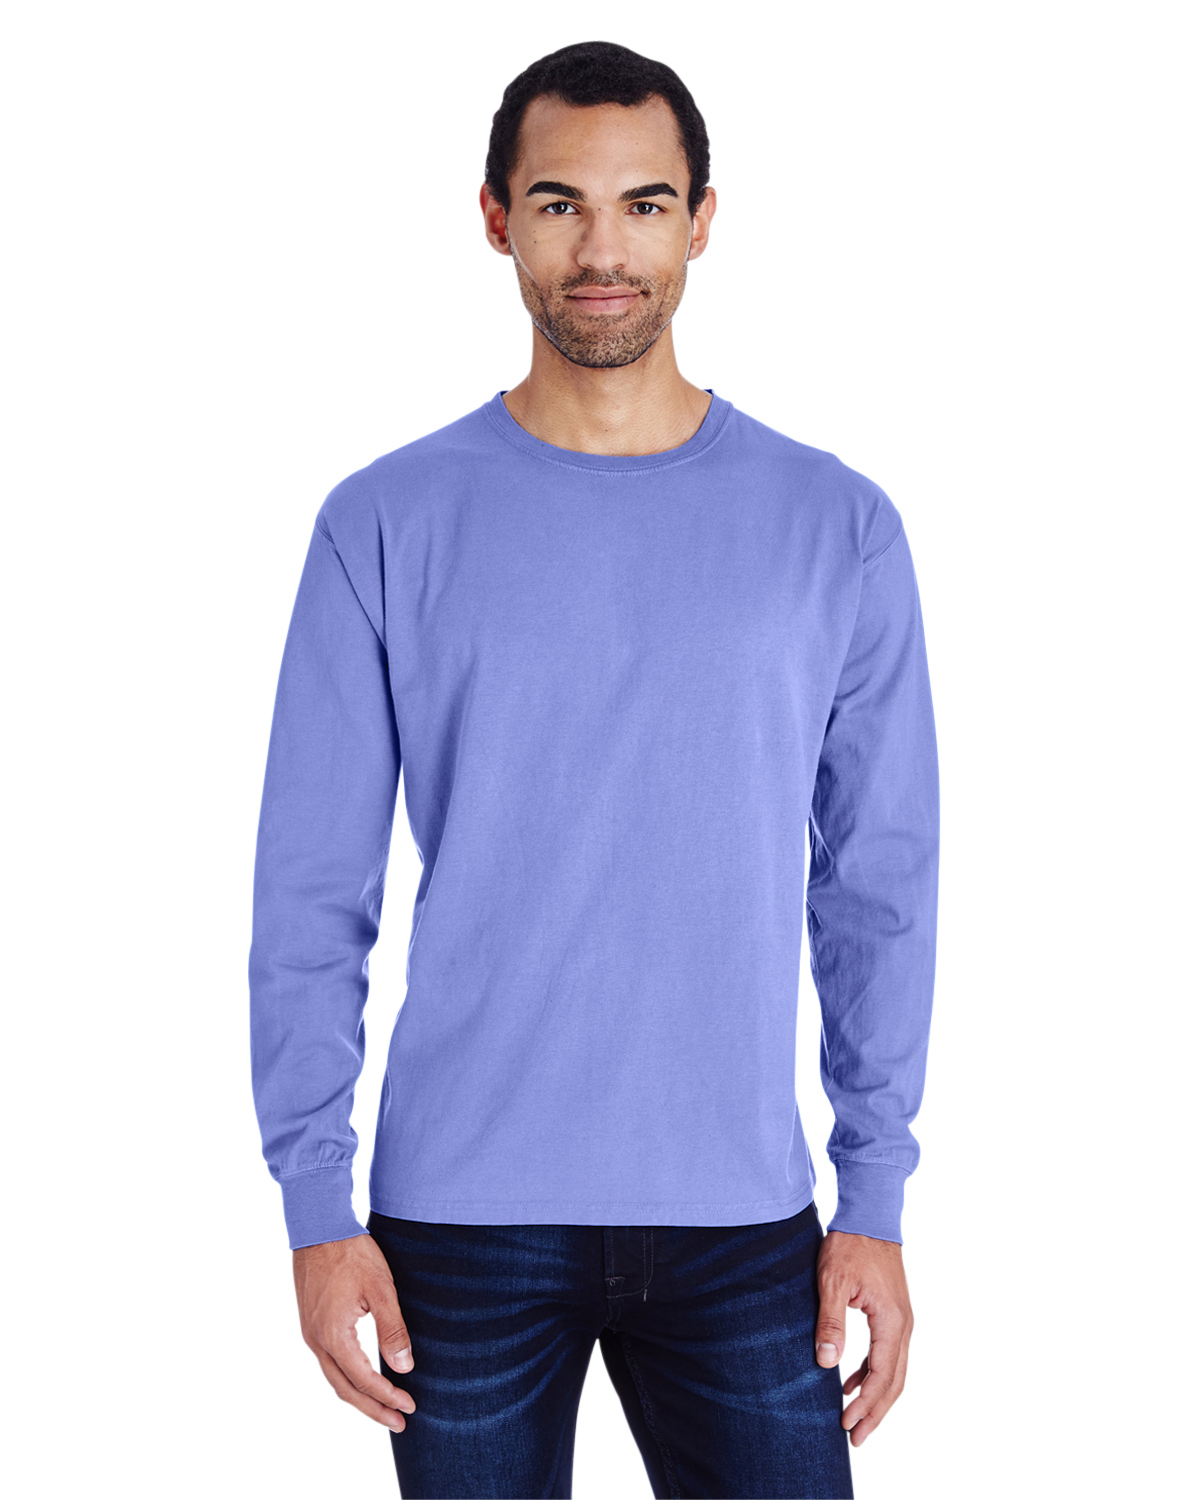 Unisex 5.5 oz., 100% Ringspun Cotton Garment-Dyed Long-Sleeve T-Shirt